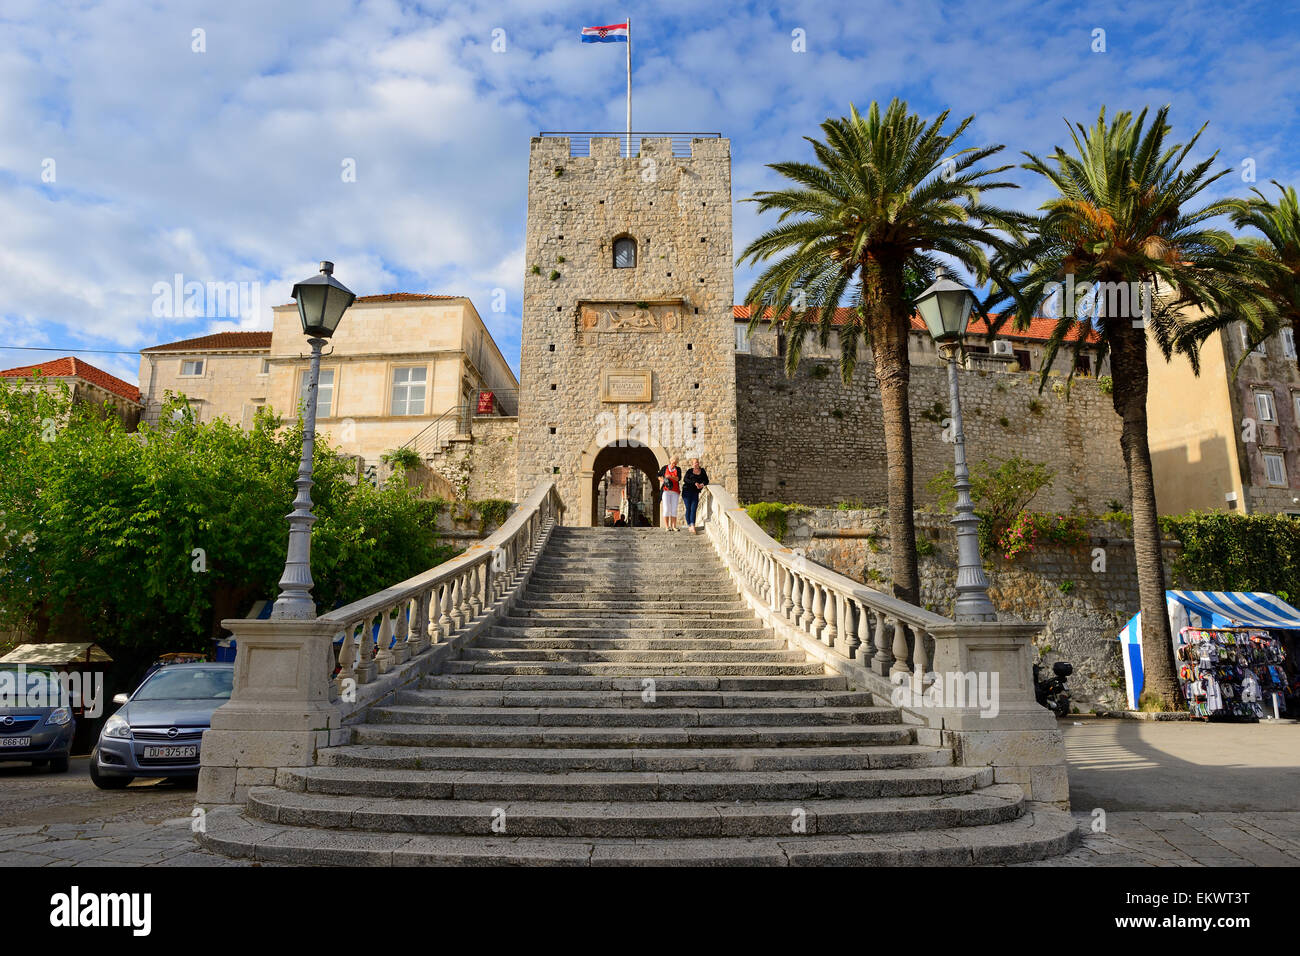 Land Gate and Revelin Tower, main entrance to old town of Korcula on Dalmatian Coast of Croatia - Stock Image